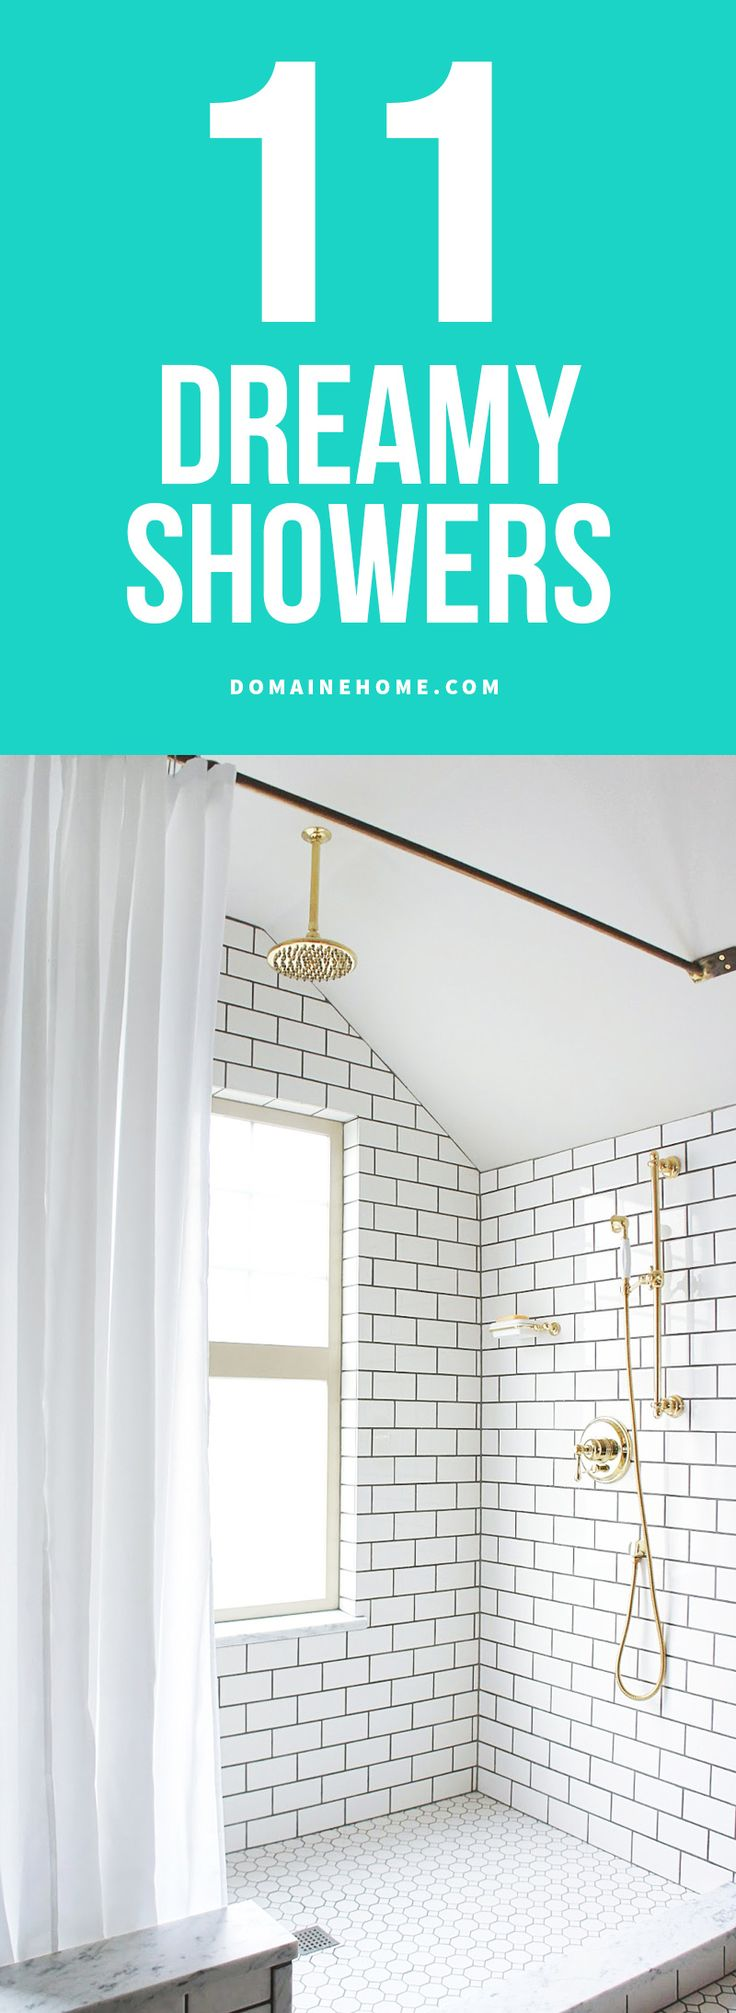 Beautiful showers from homes around the world to inspire a redesign.